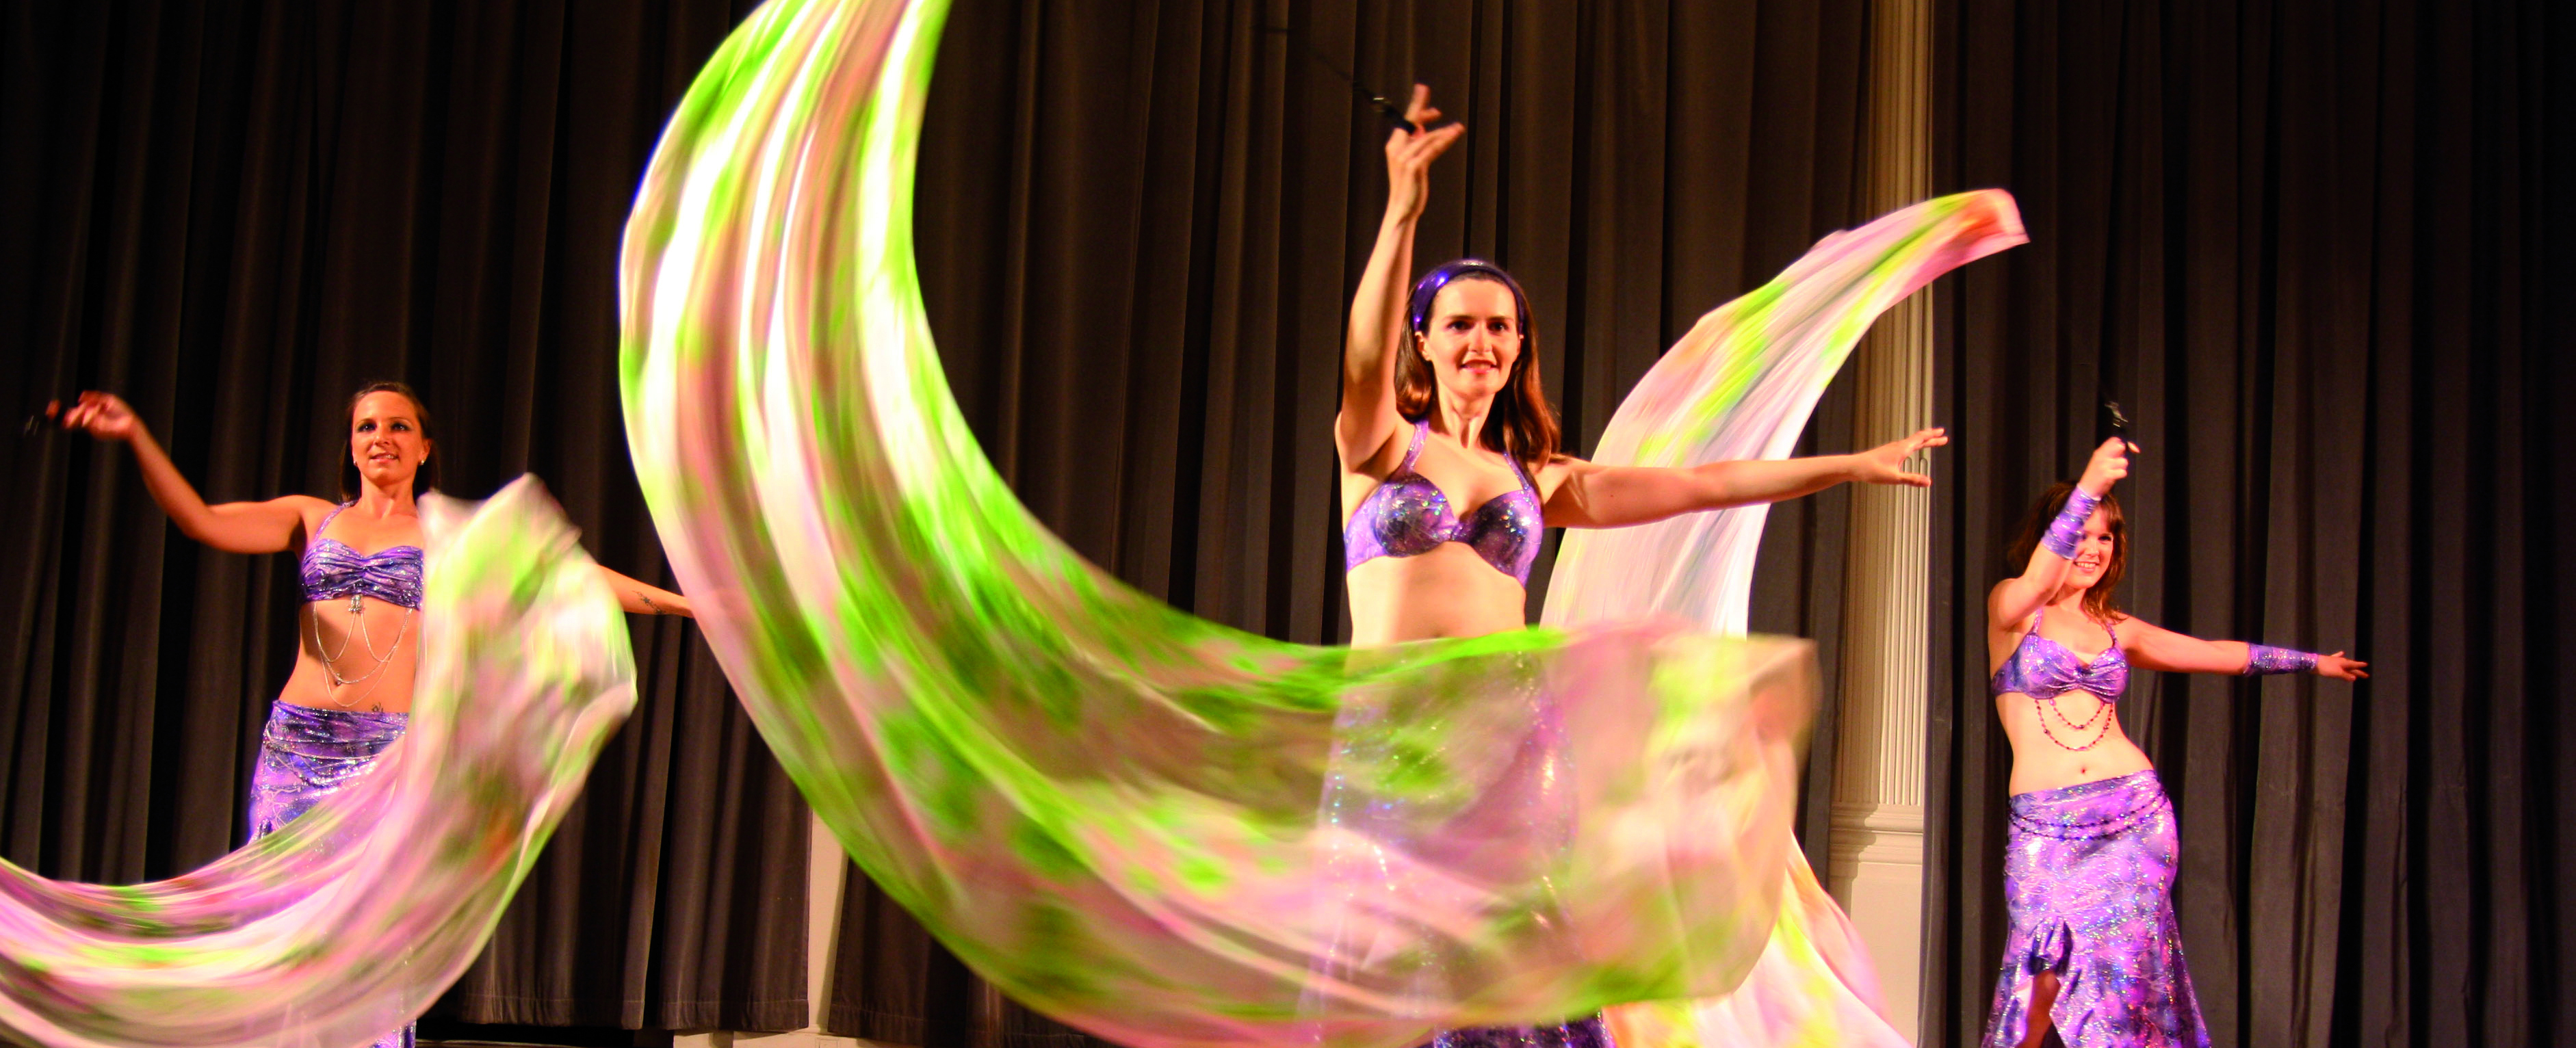 Belly dancers performing